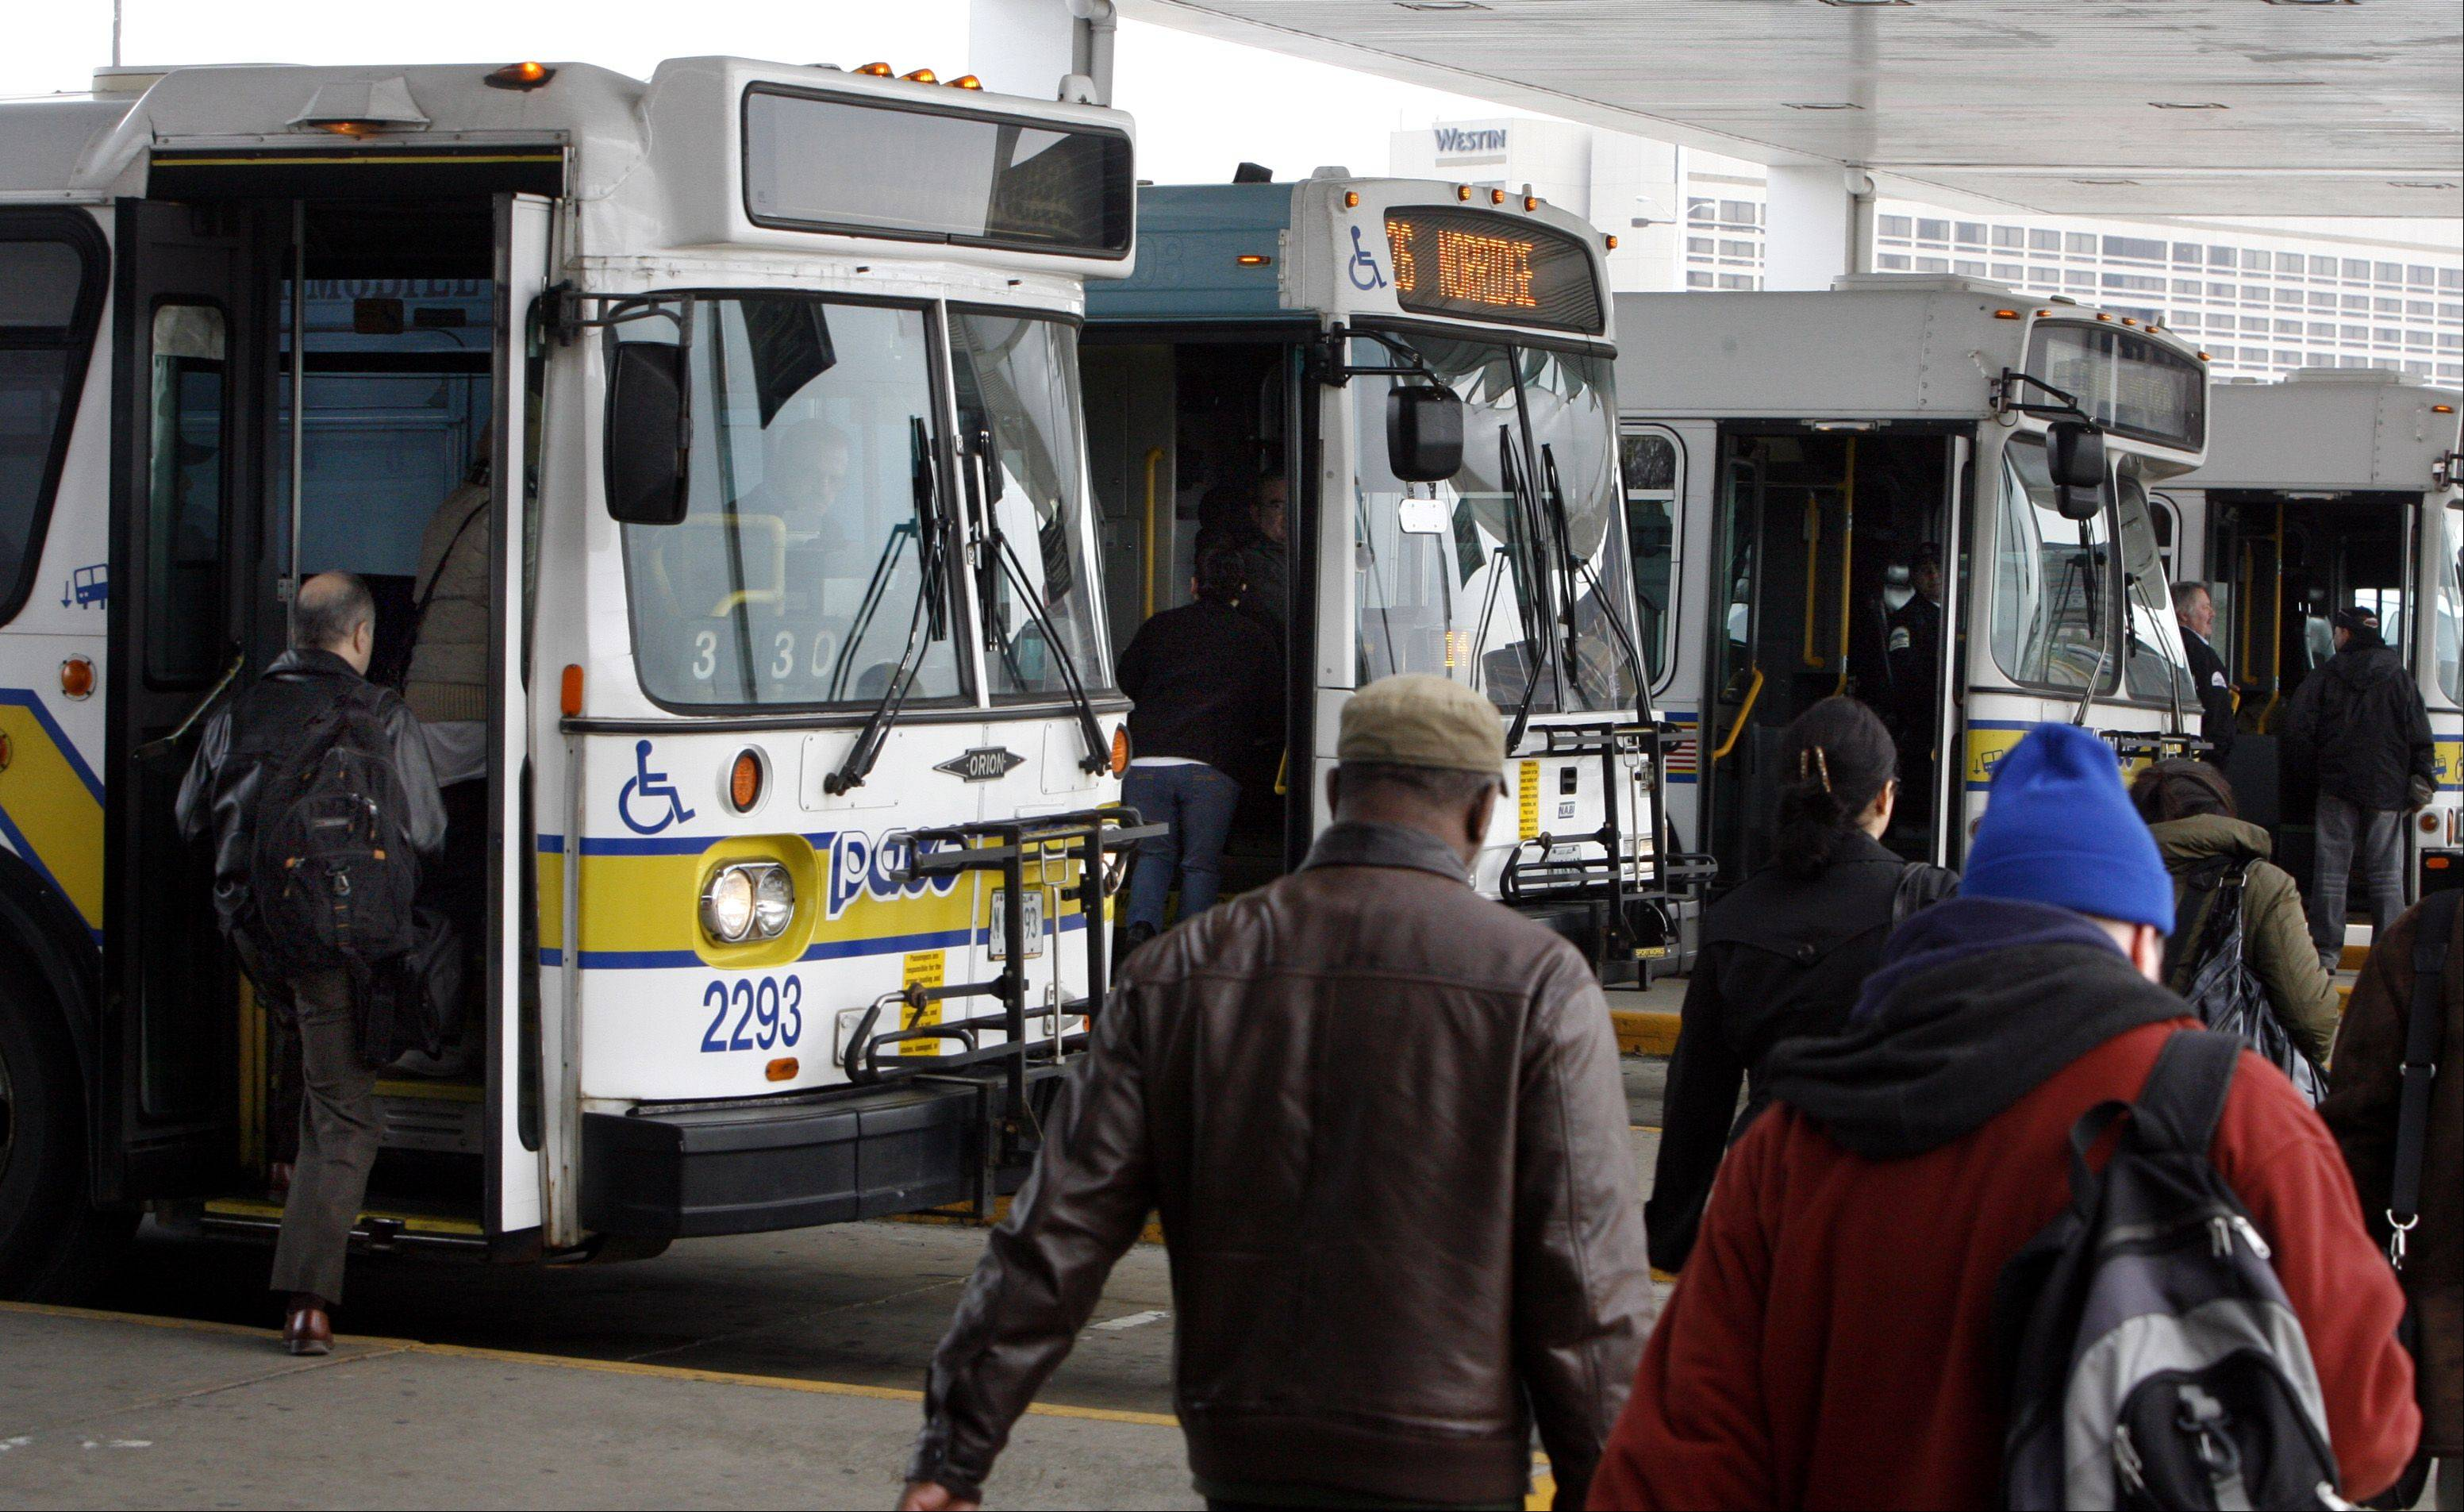 Riders head toward Pace buses lined up during the morning rush hour at the CTA Blue Line station on River Road in Rosemont.